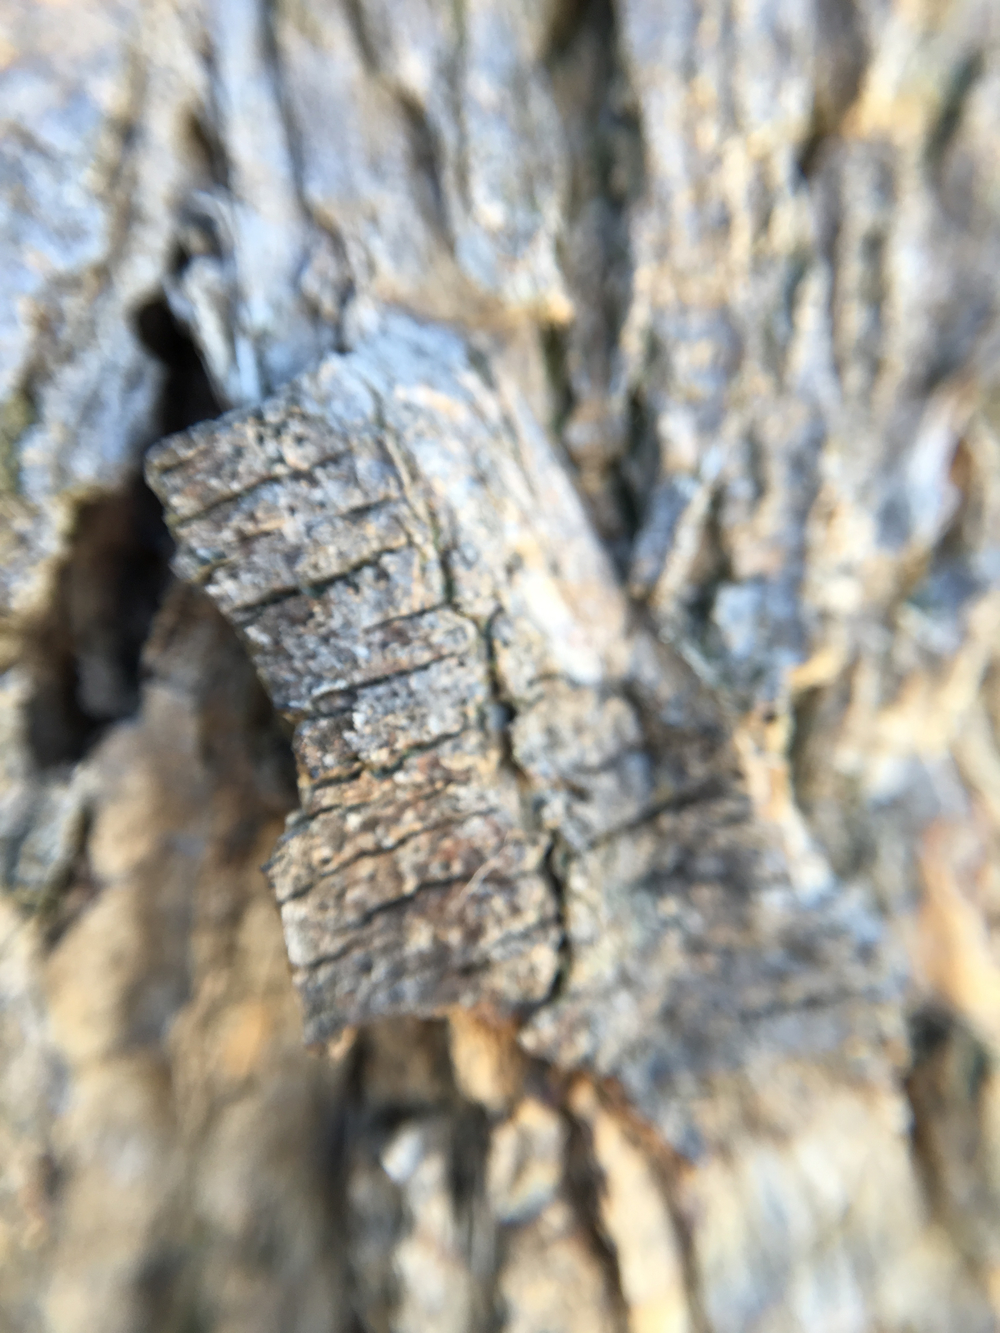 10x zoom onto bark - 1 cm piece.